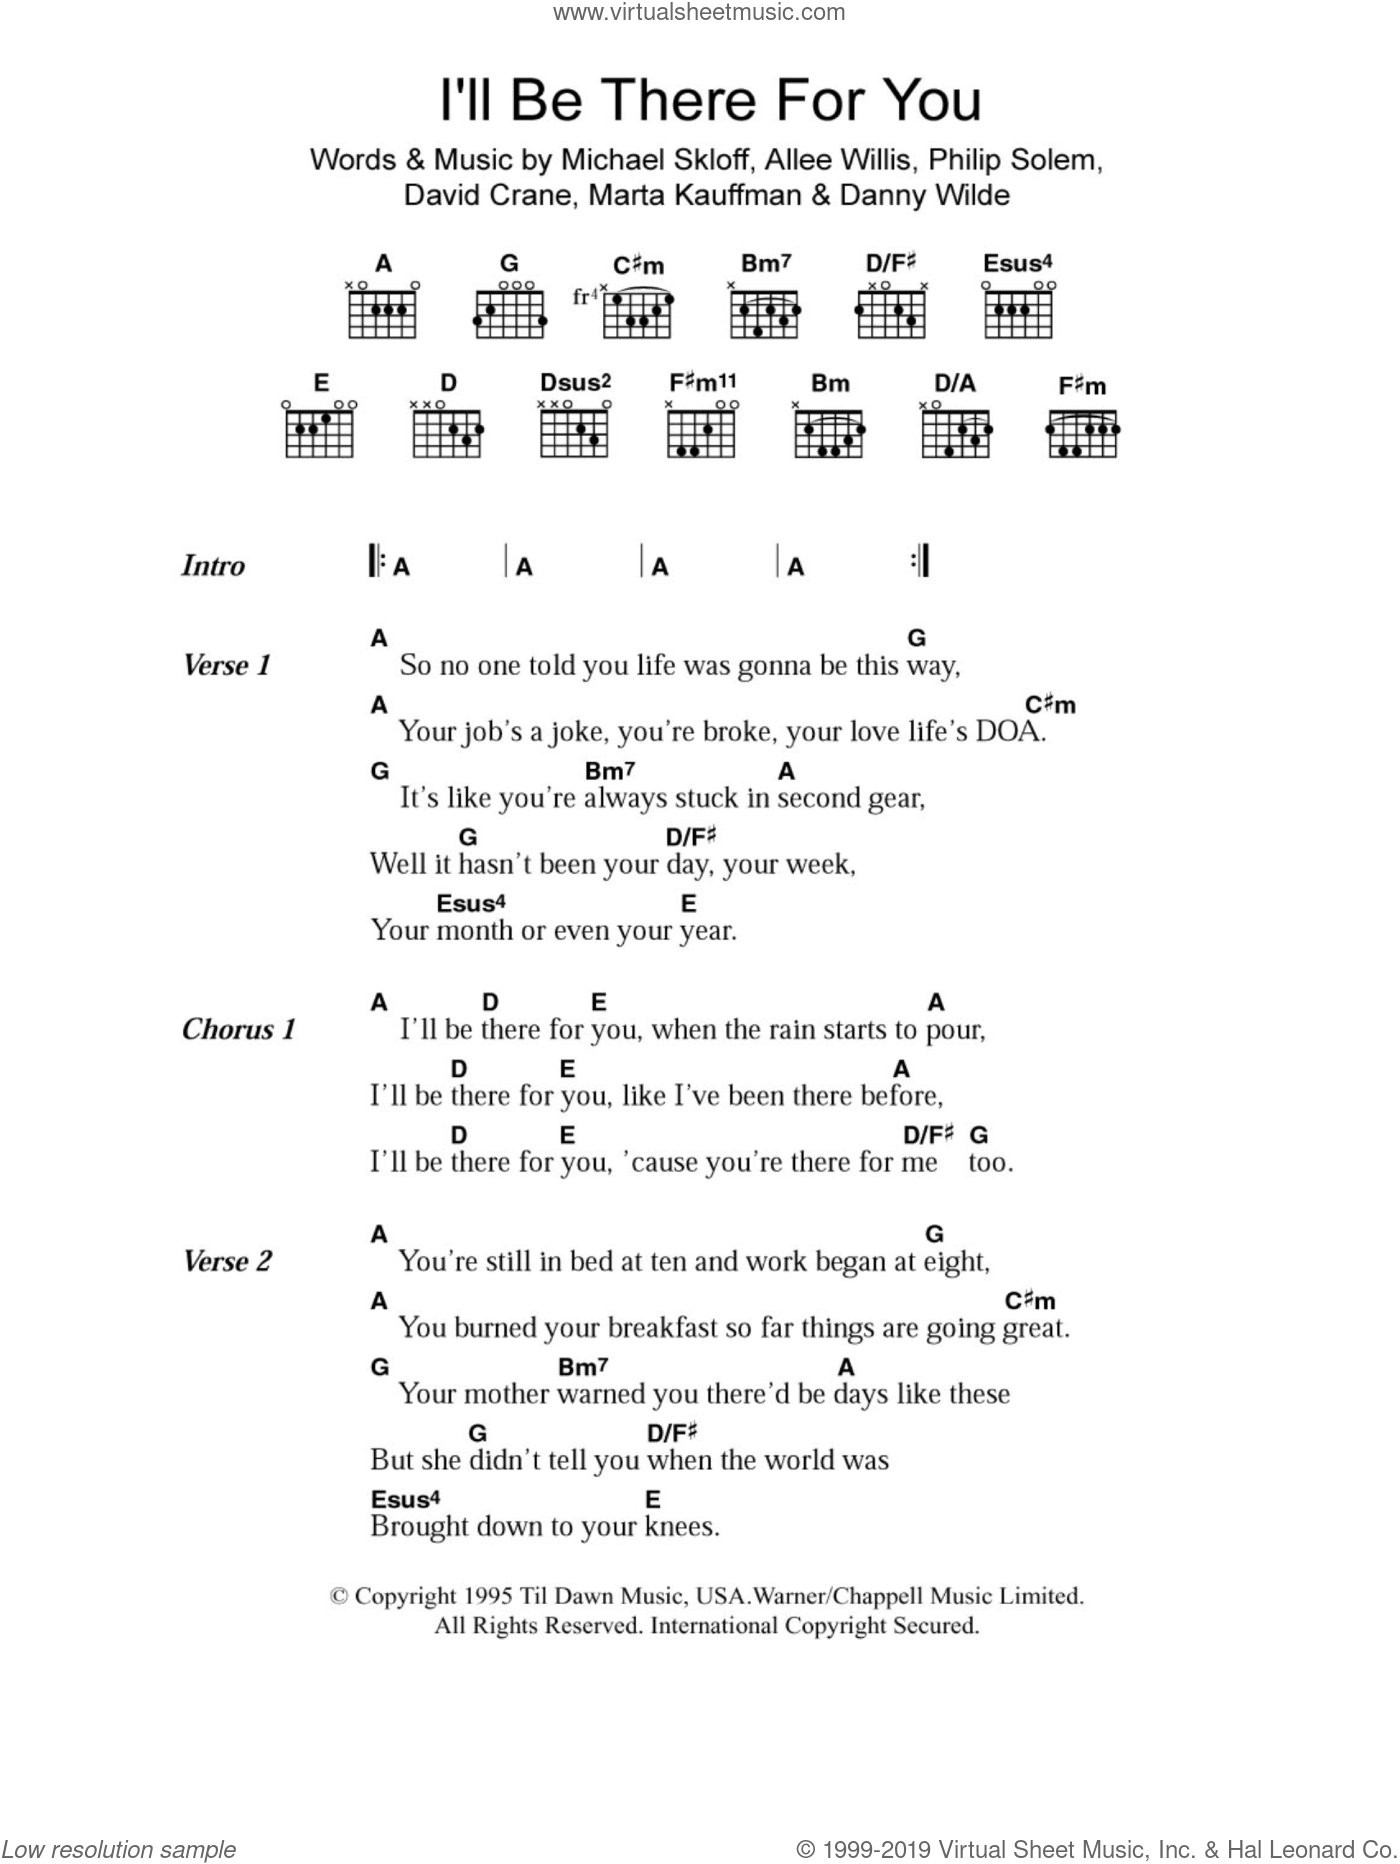 I'll Be There For You sheet music for guitar (chords) by Philip Solem